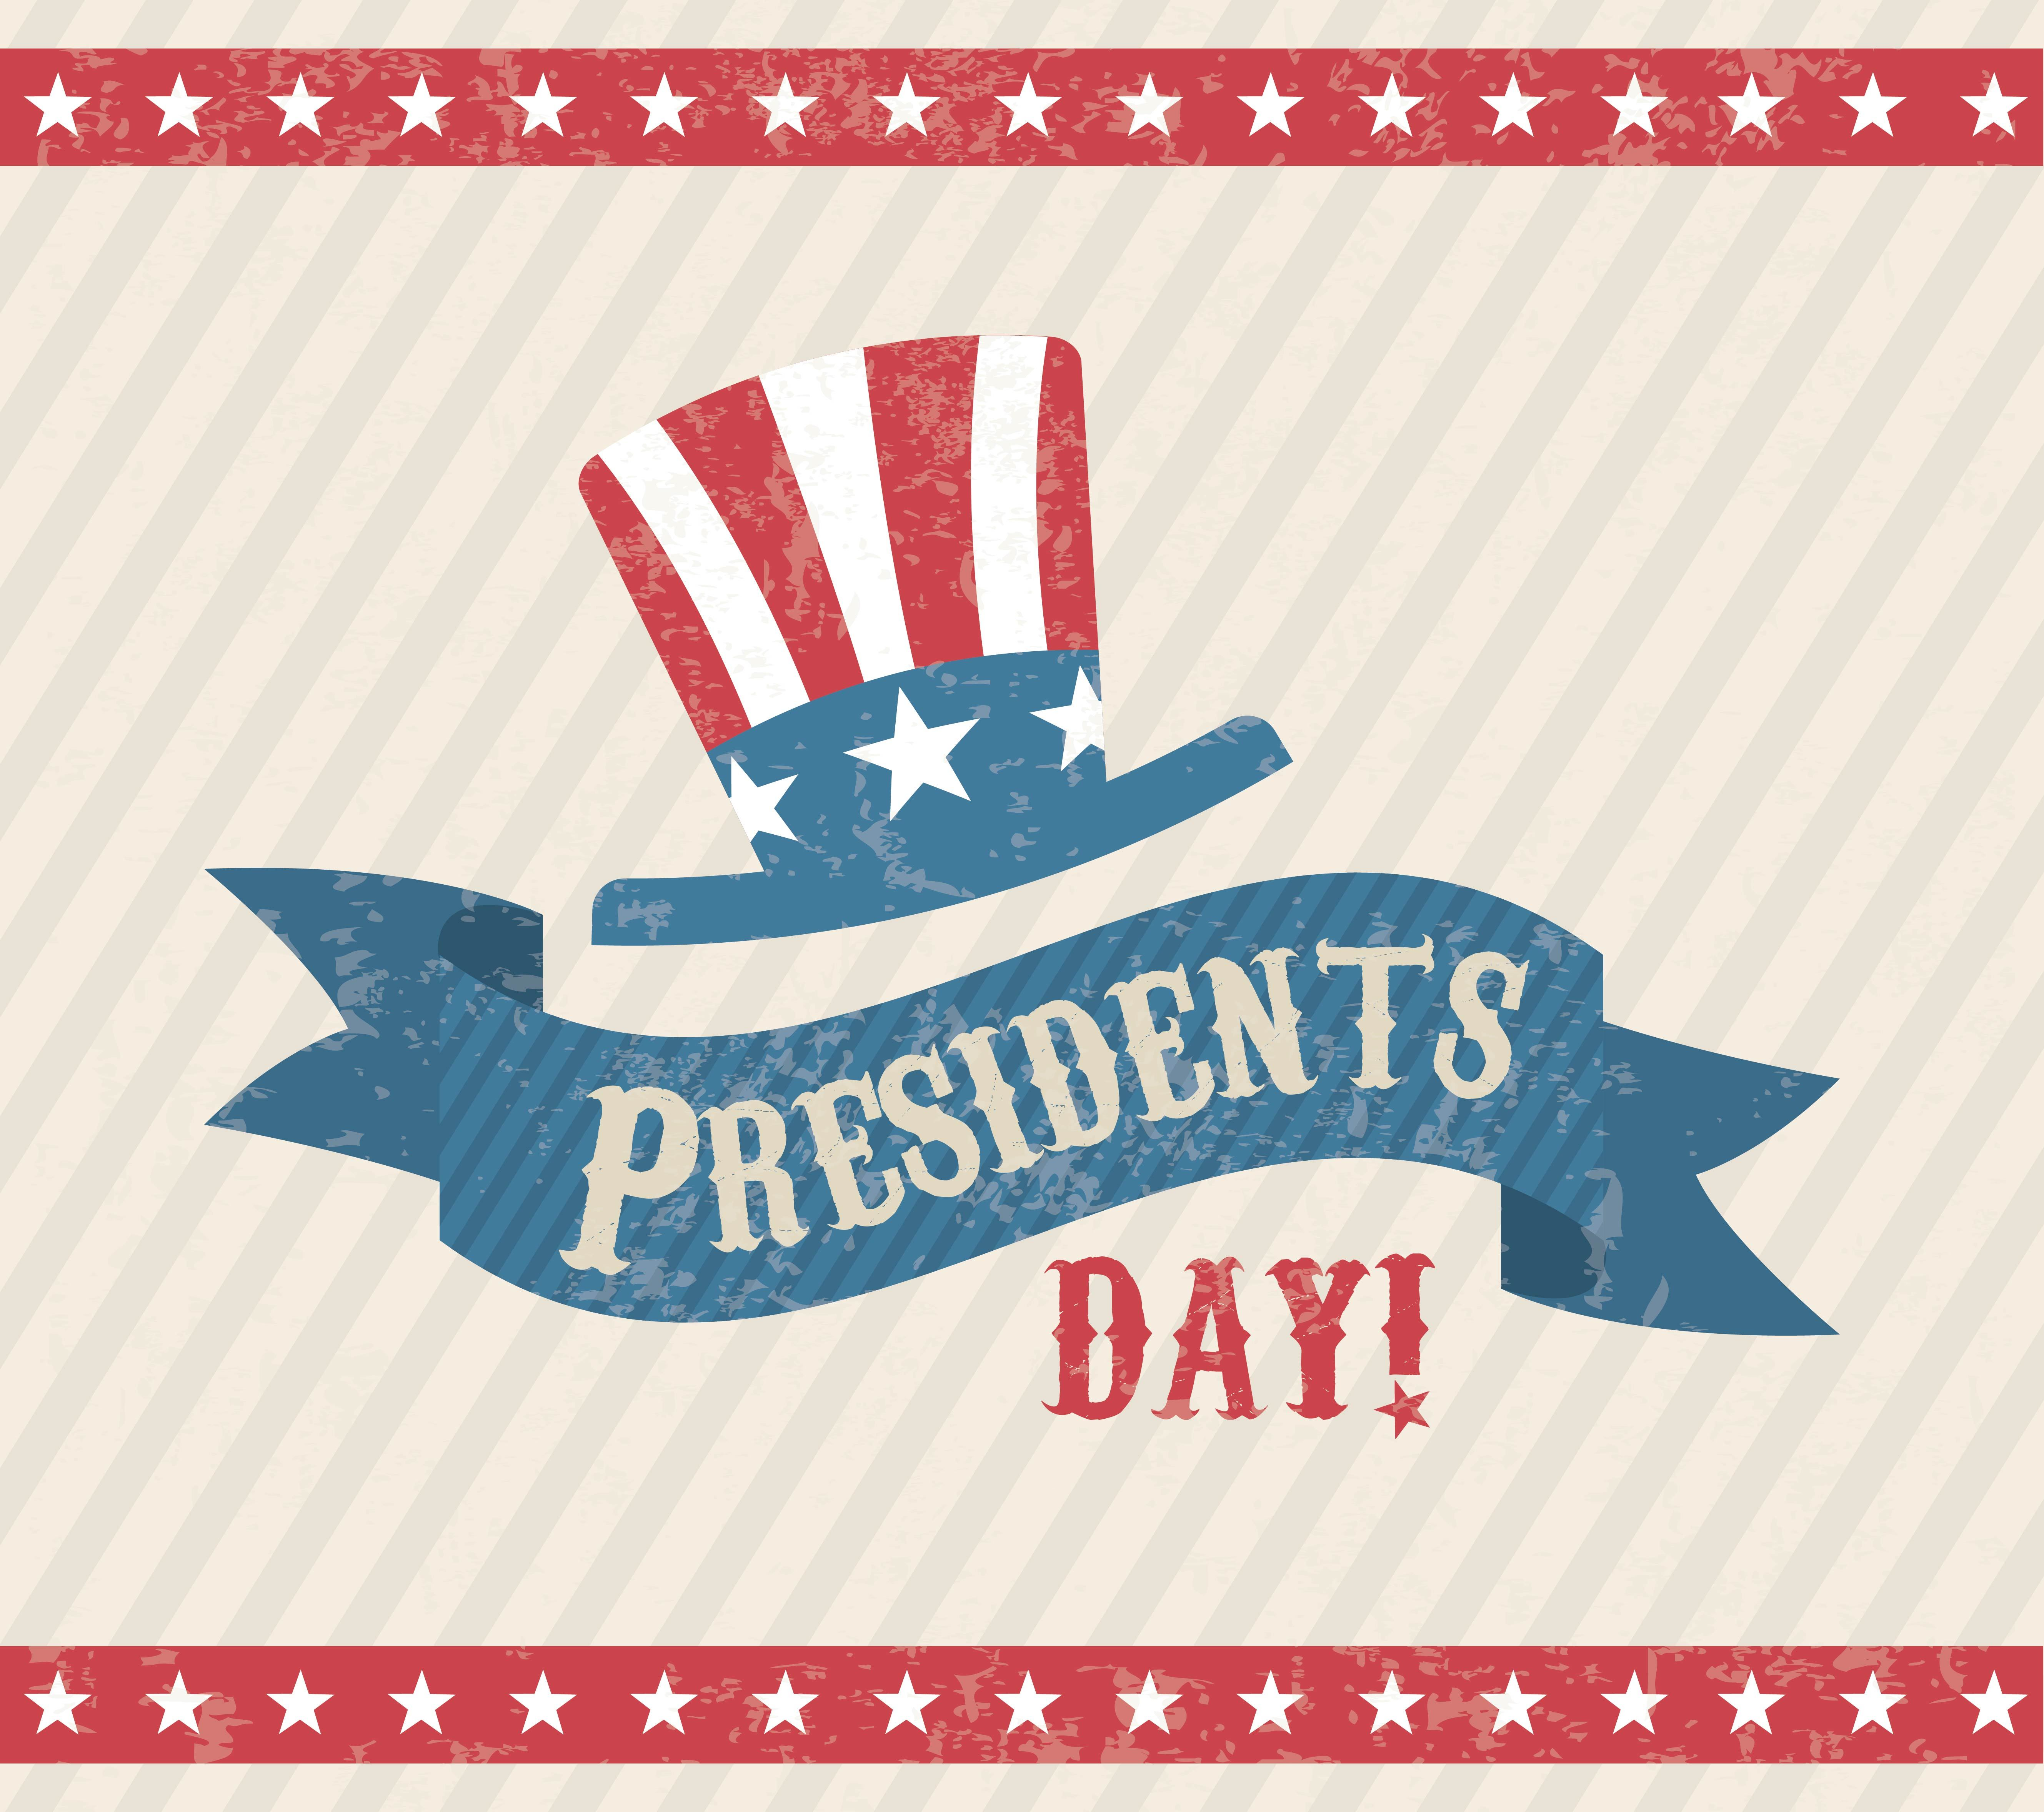 Applying Email Marketing Lessons Inspired By Presidents